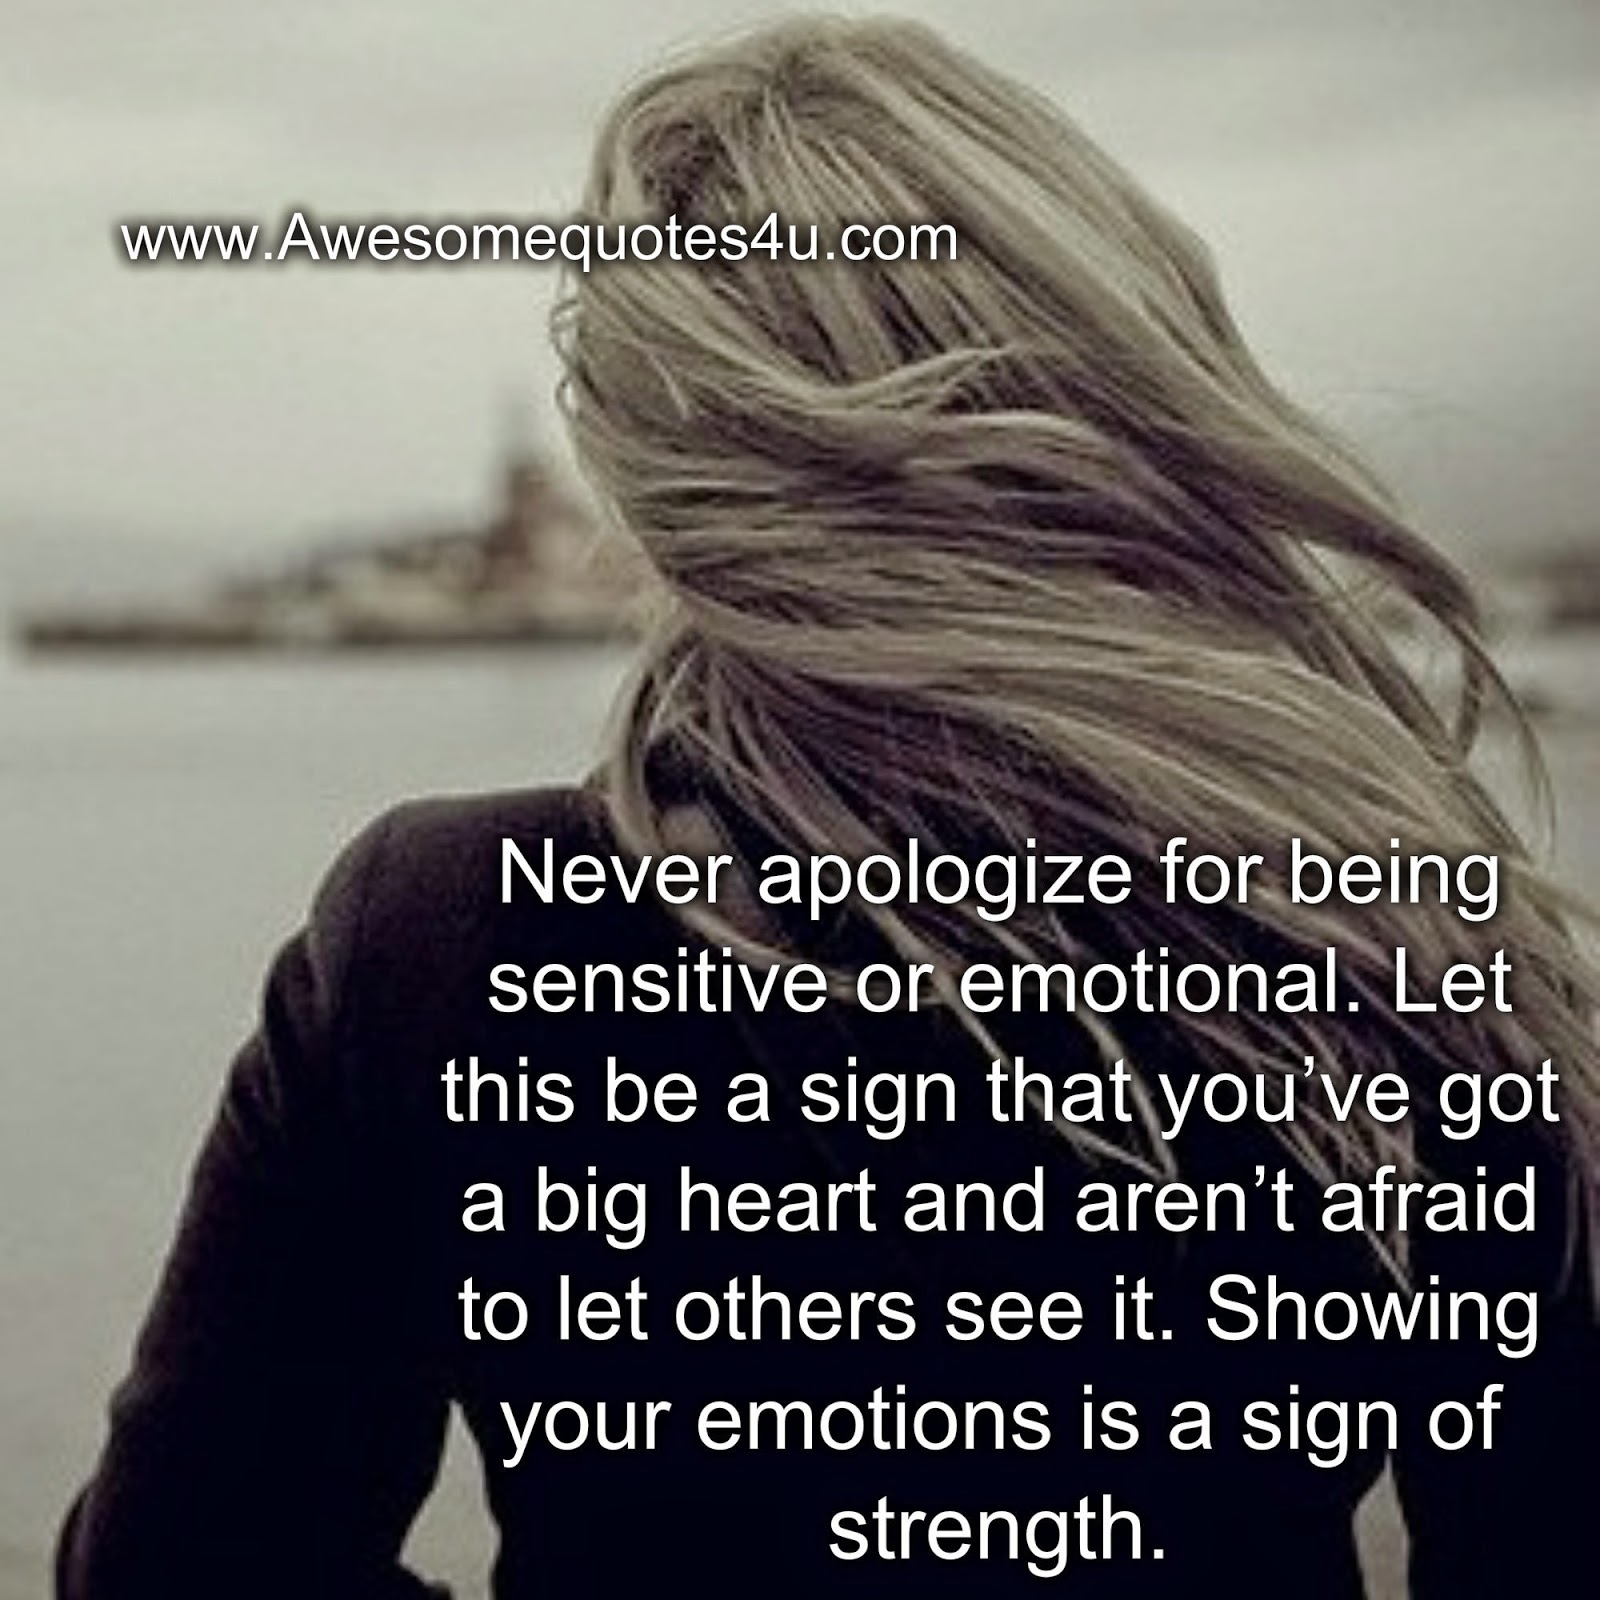 Be Sensitive To Others Feelings Quotes: Awesome Quotes: Never Apologize For Being Sensitive Or